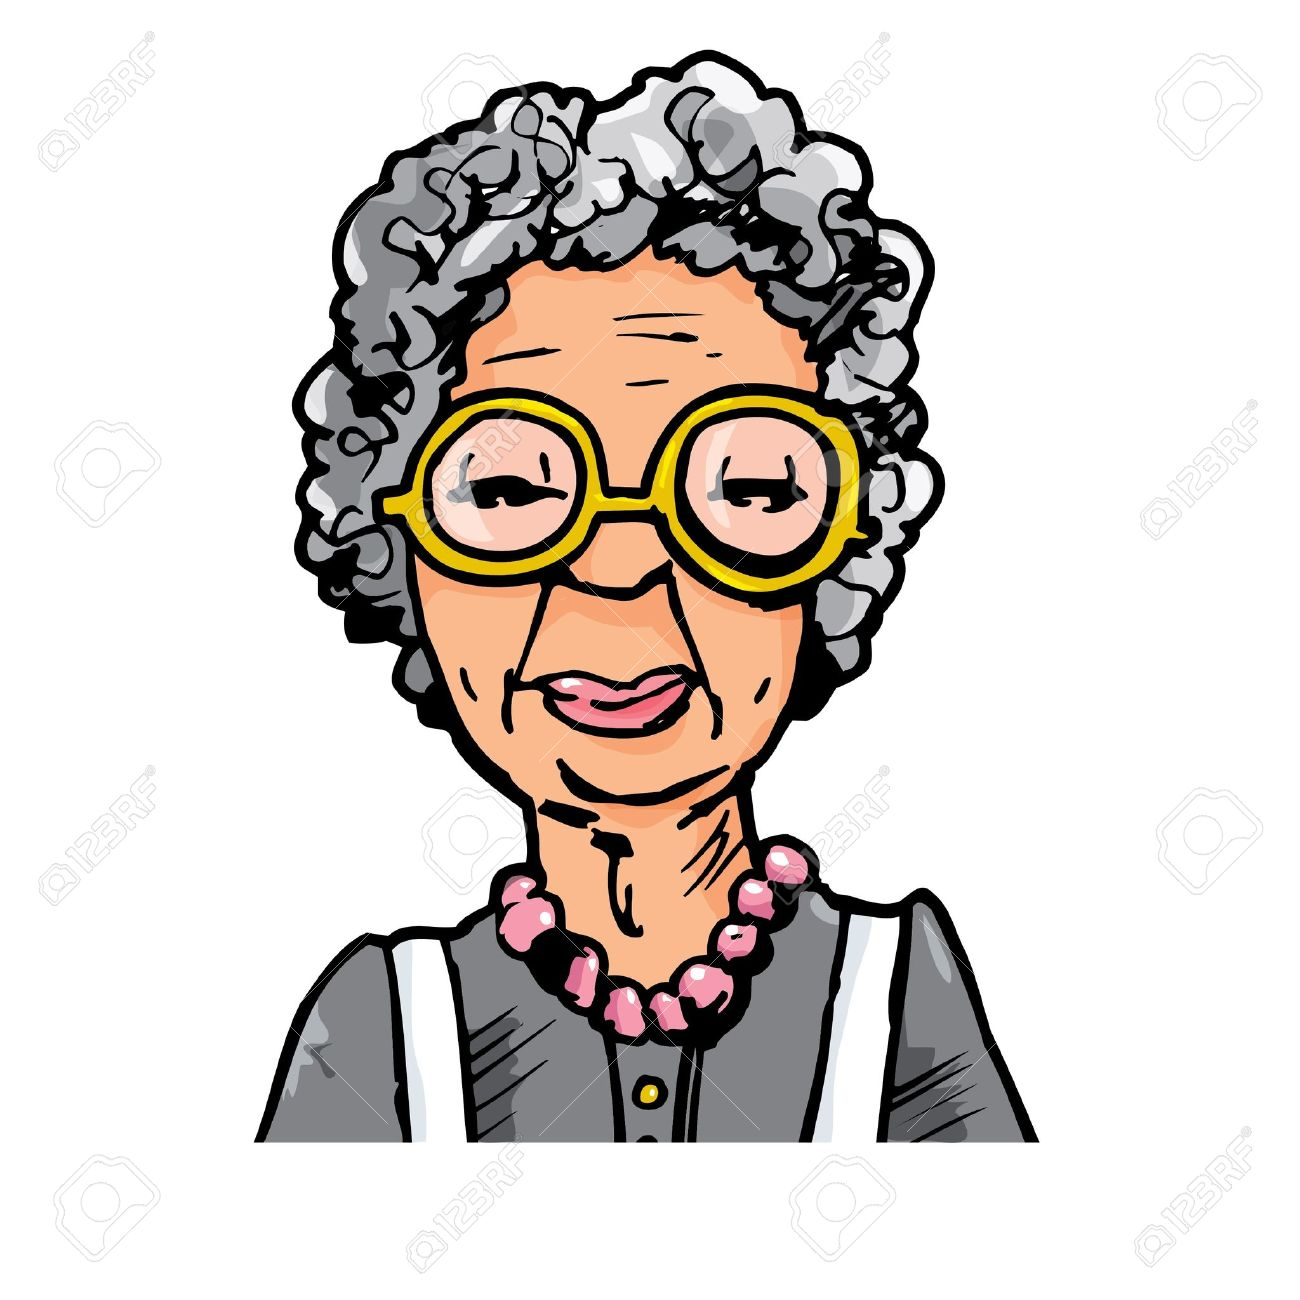 old woman: Cartoon of an old .-old woman: Cartoon of an old .-16